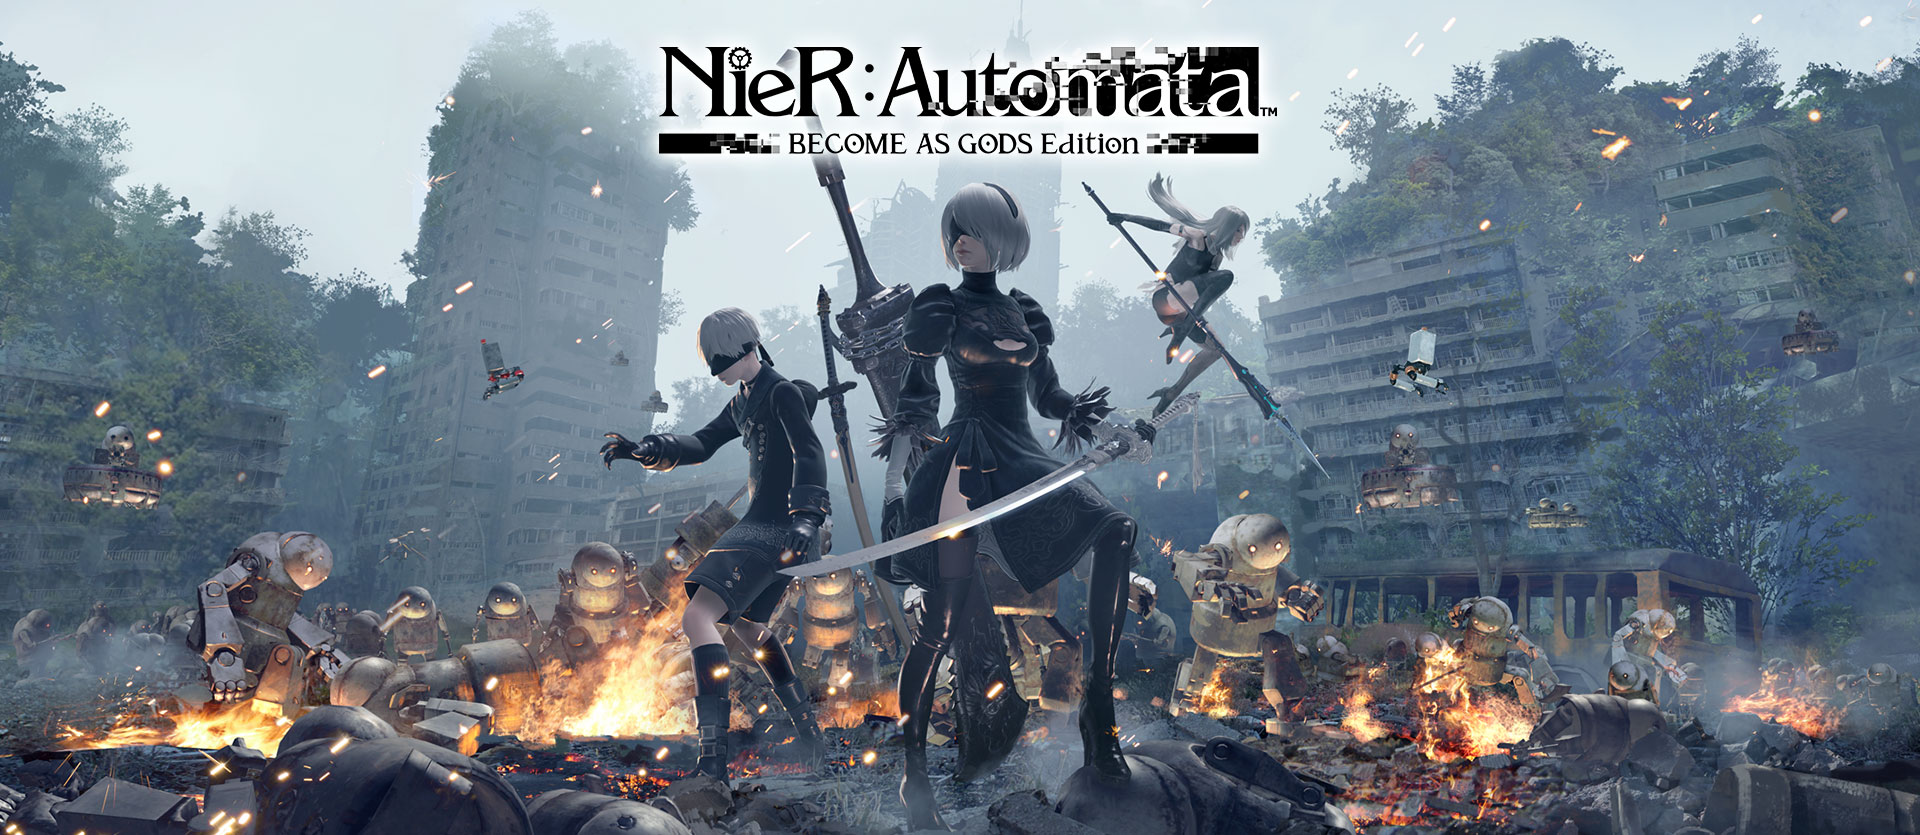 Nier Automata Becomes as Gods Edition, Androids 2B, 9S, and A2 battle machine invaders from another world